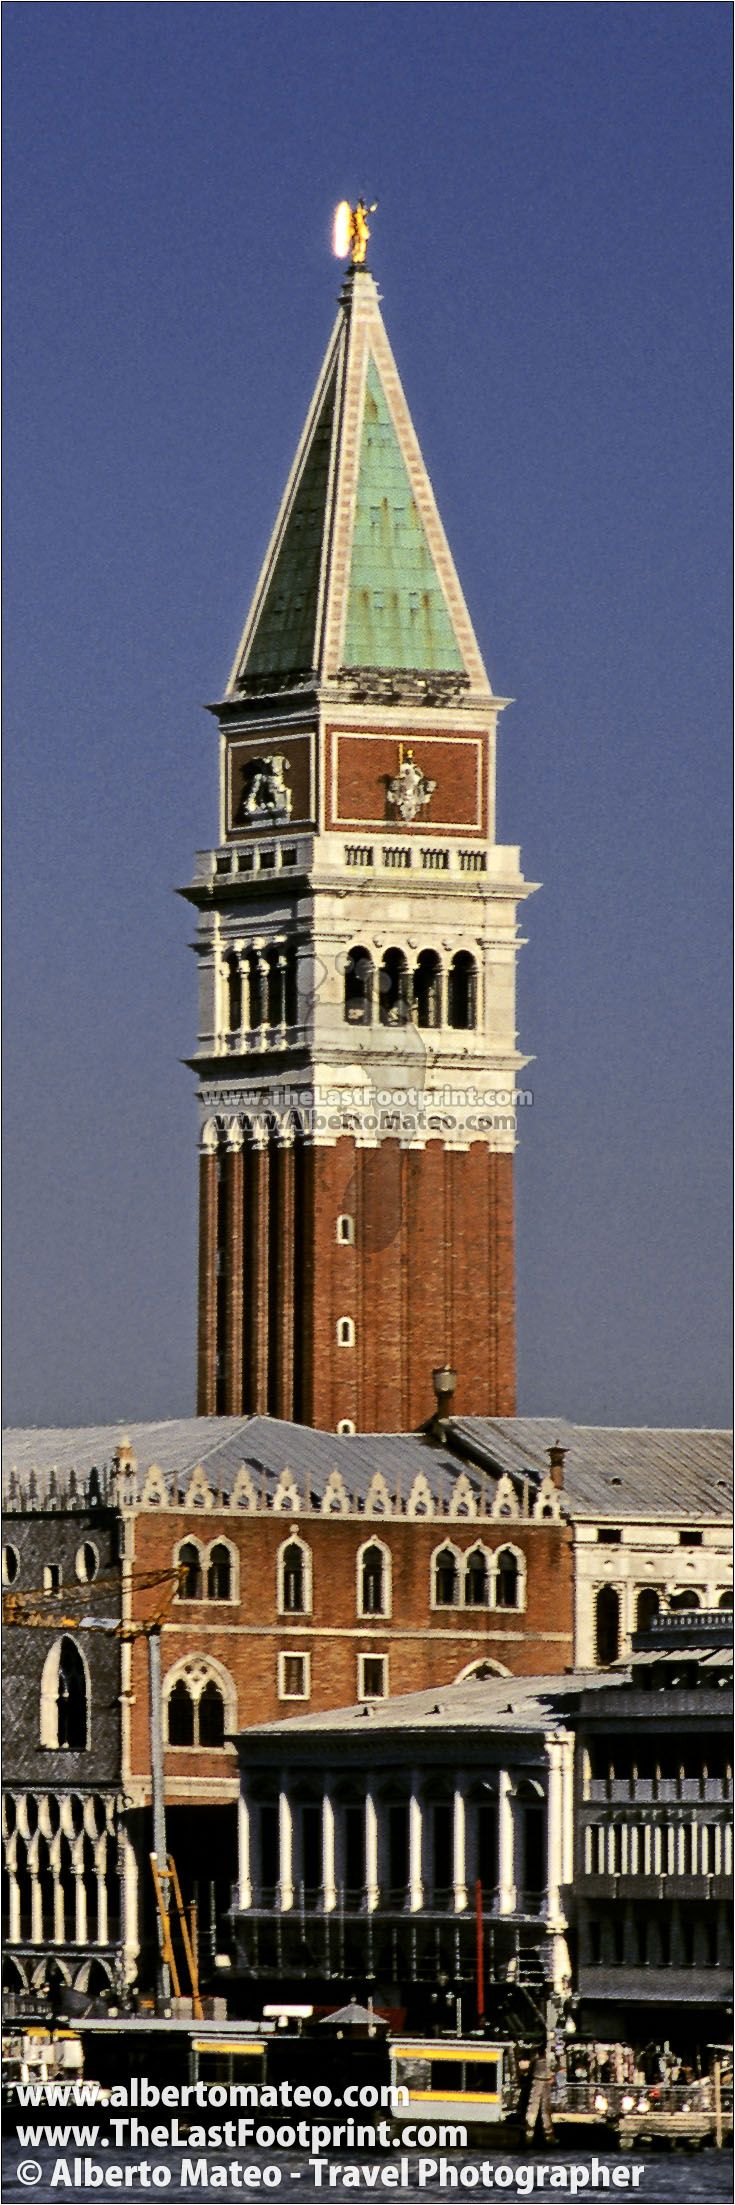 San Marco Bell Tower and Palazzo Duccale, Piazza San Marco, Venice, Italy. Photograph by Alberto Mateo, Travel Photographer.